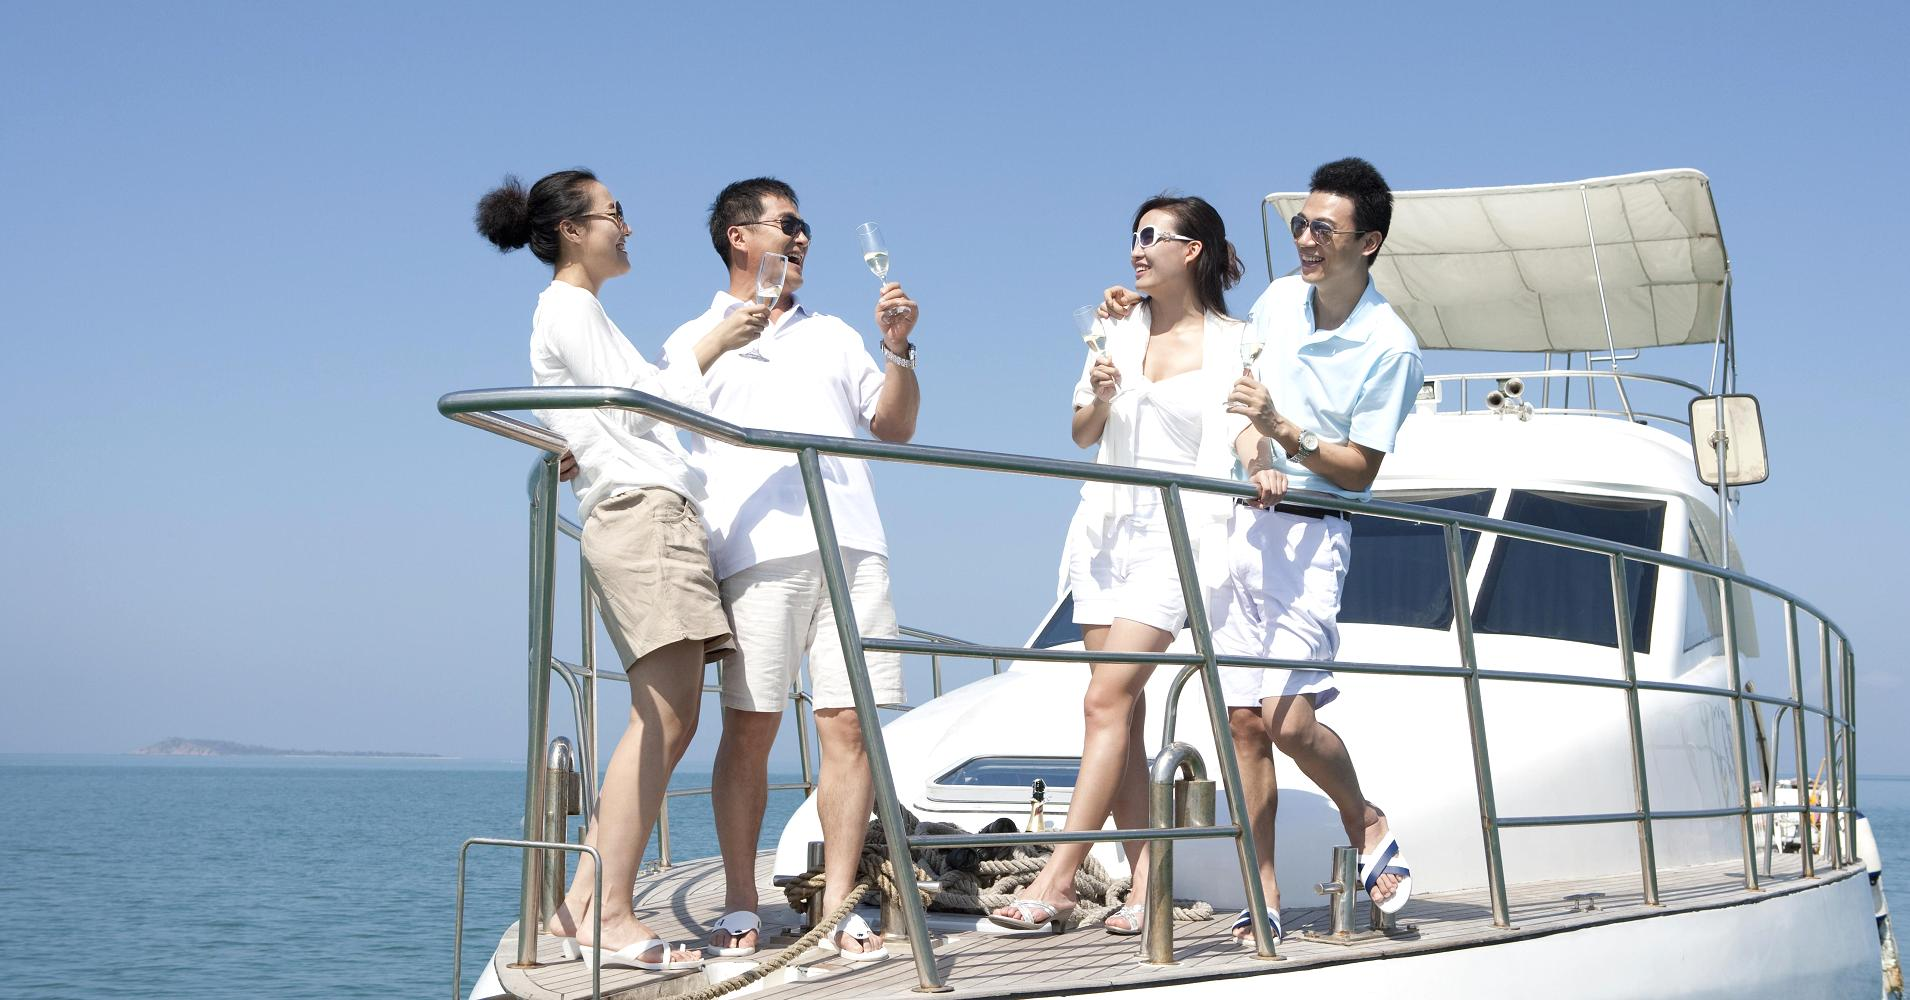 Why Targeting Chinese Independent Travelers Is Difficult for Tourism Businesses